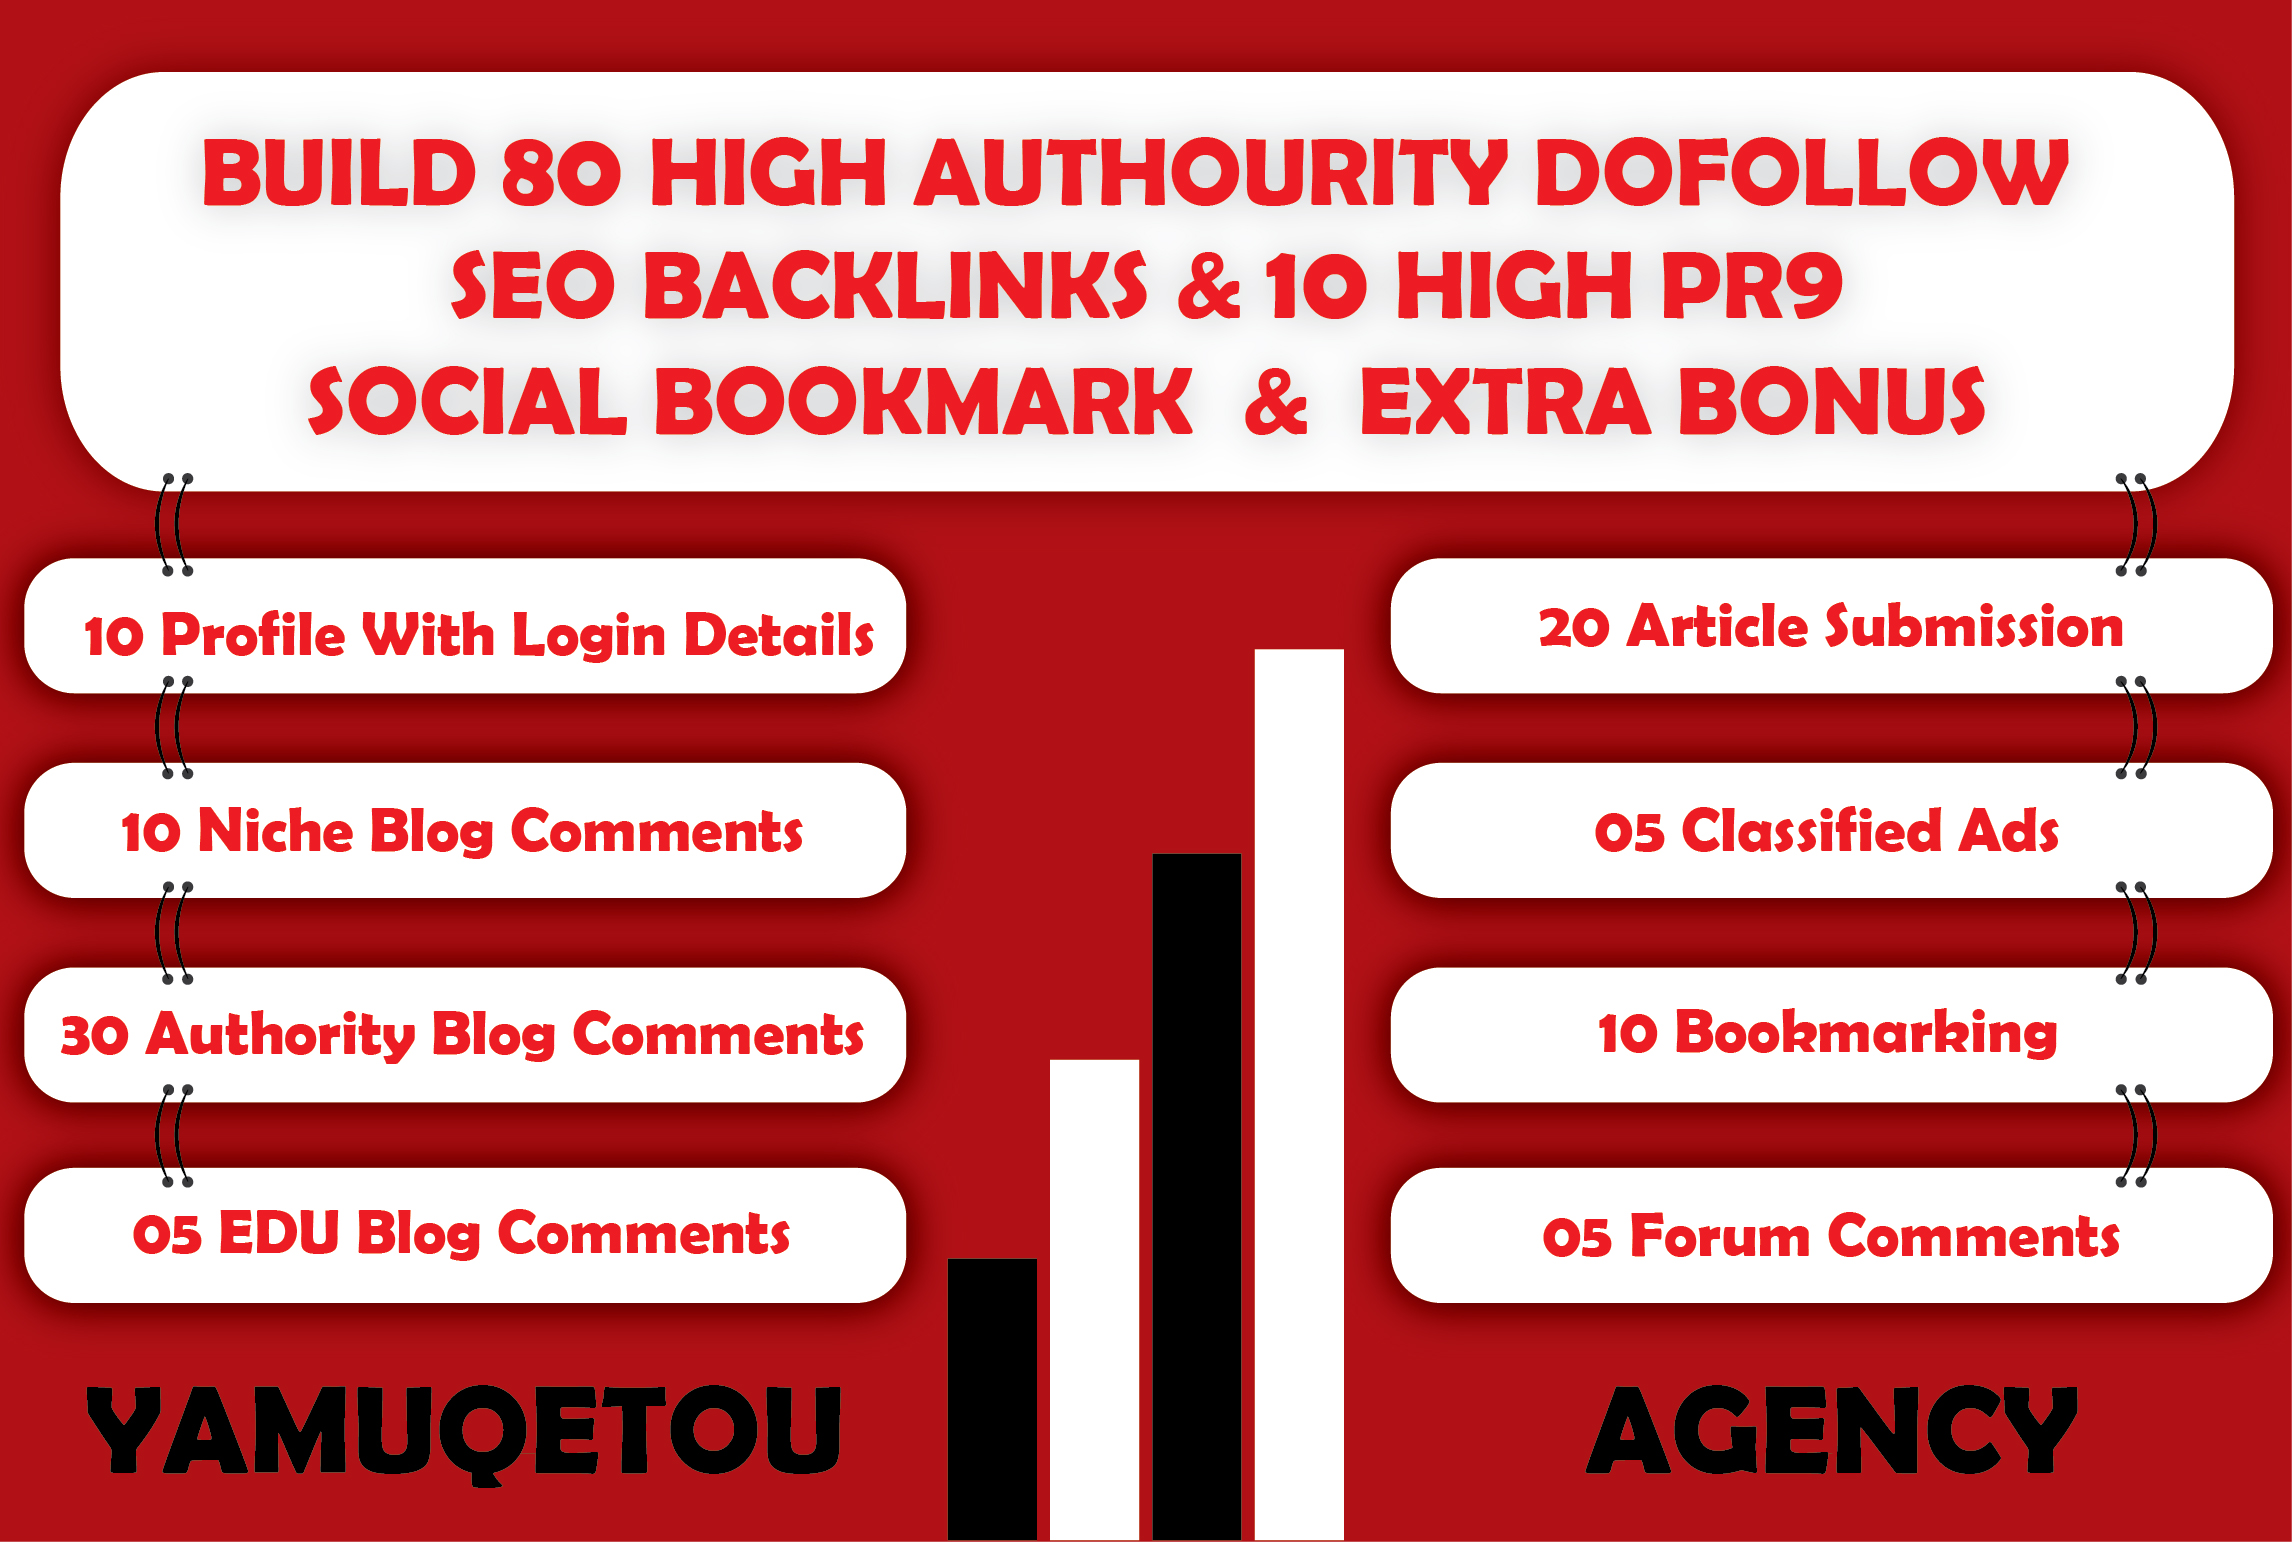 I Will Build 80 High Authority Dofollow SEO Backlinks + 10 High PR9 Social Bookmark+ Extra Bonus